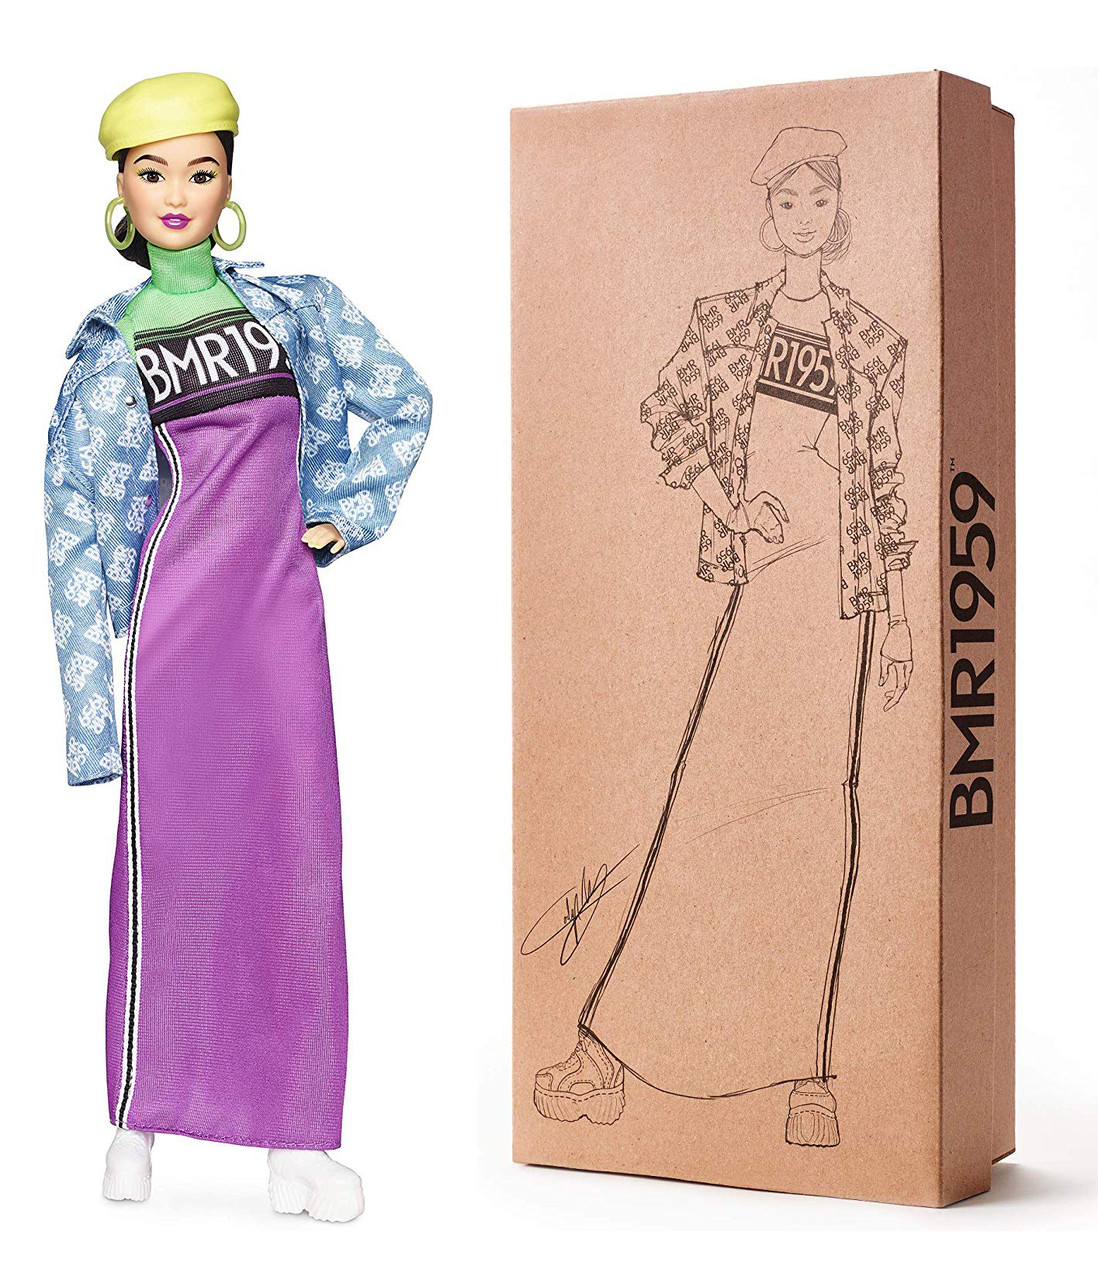 Кукла Барби Barbie BMR1959 Fully Poseable Fashion Doll оригинал от Mattel